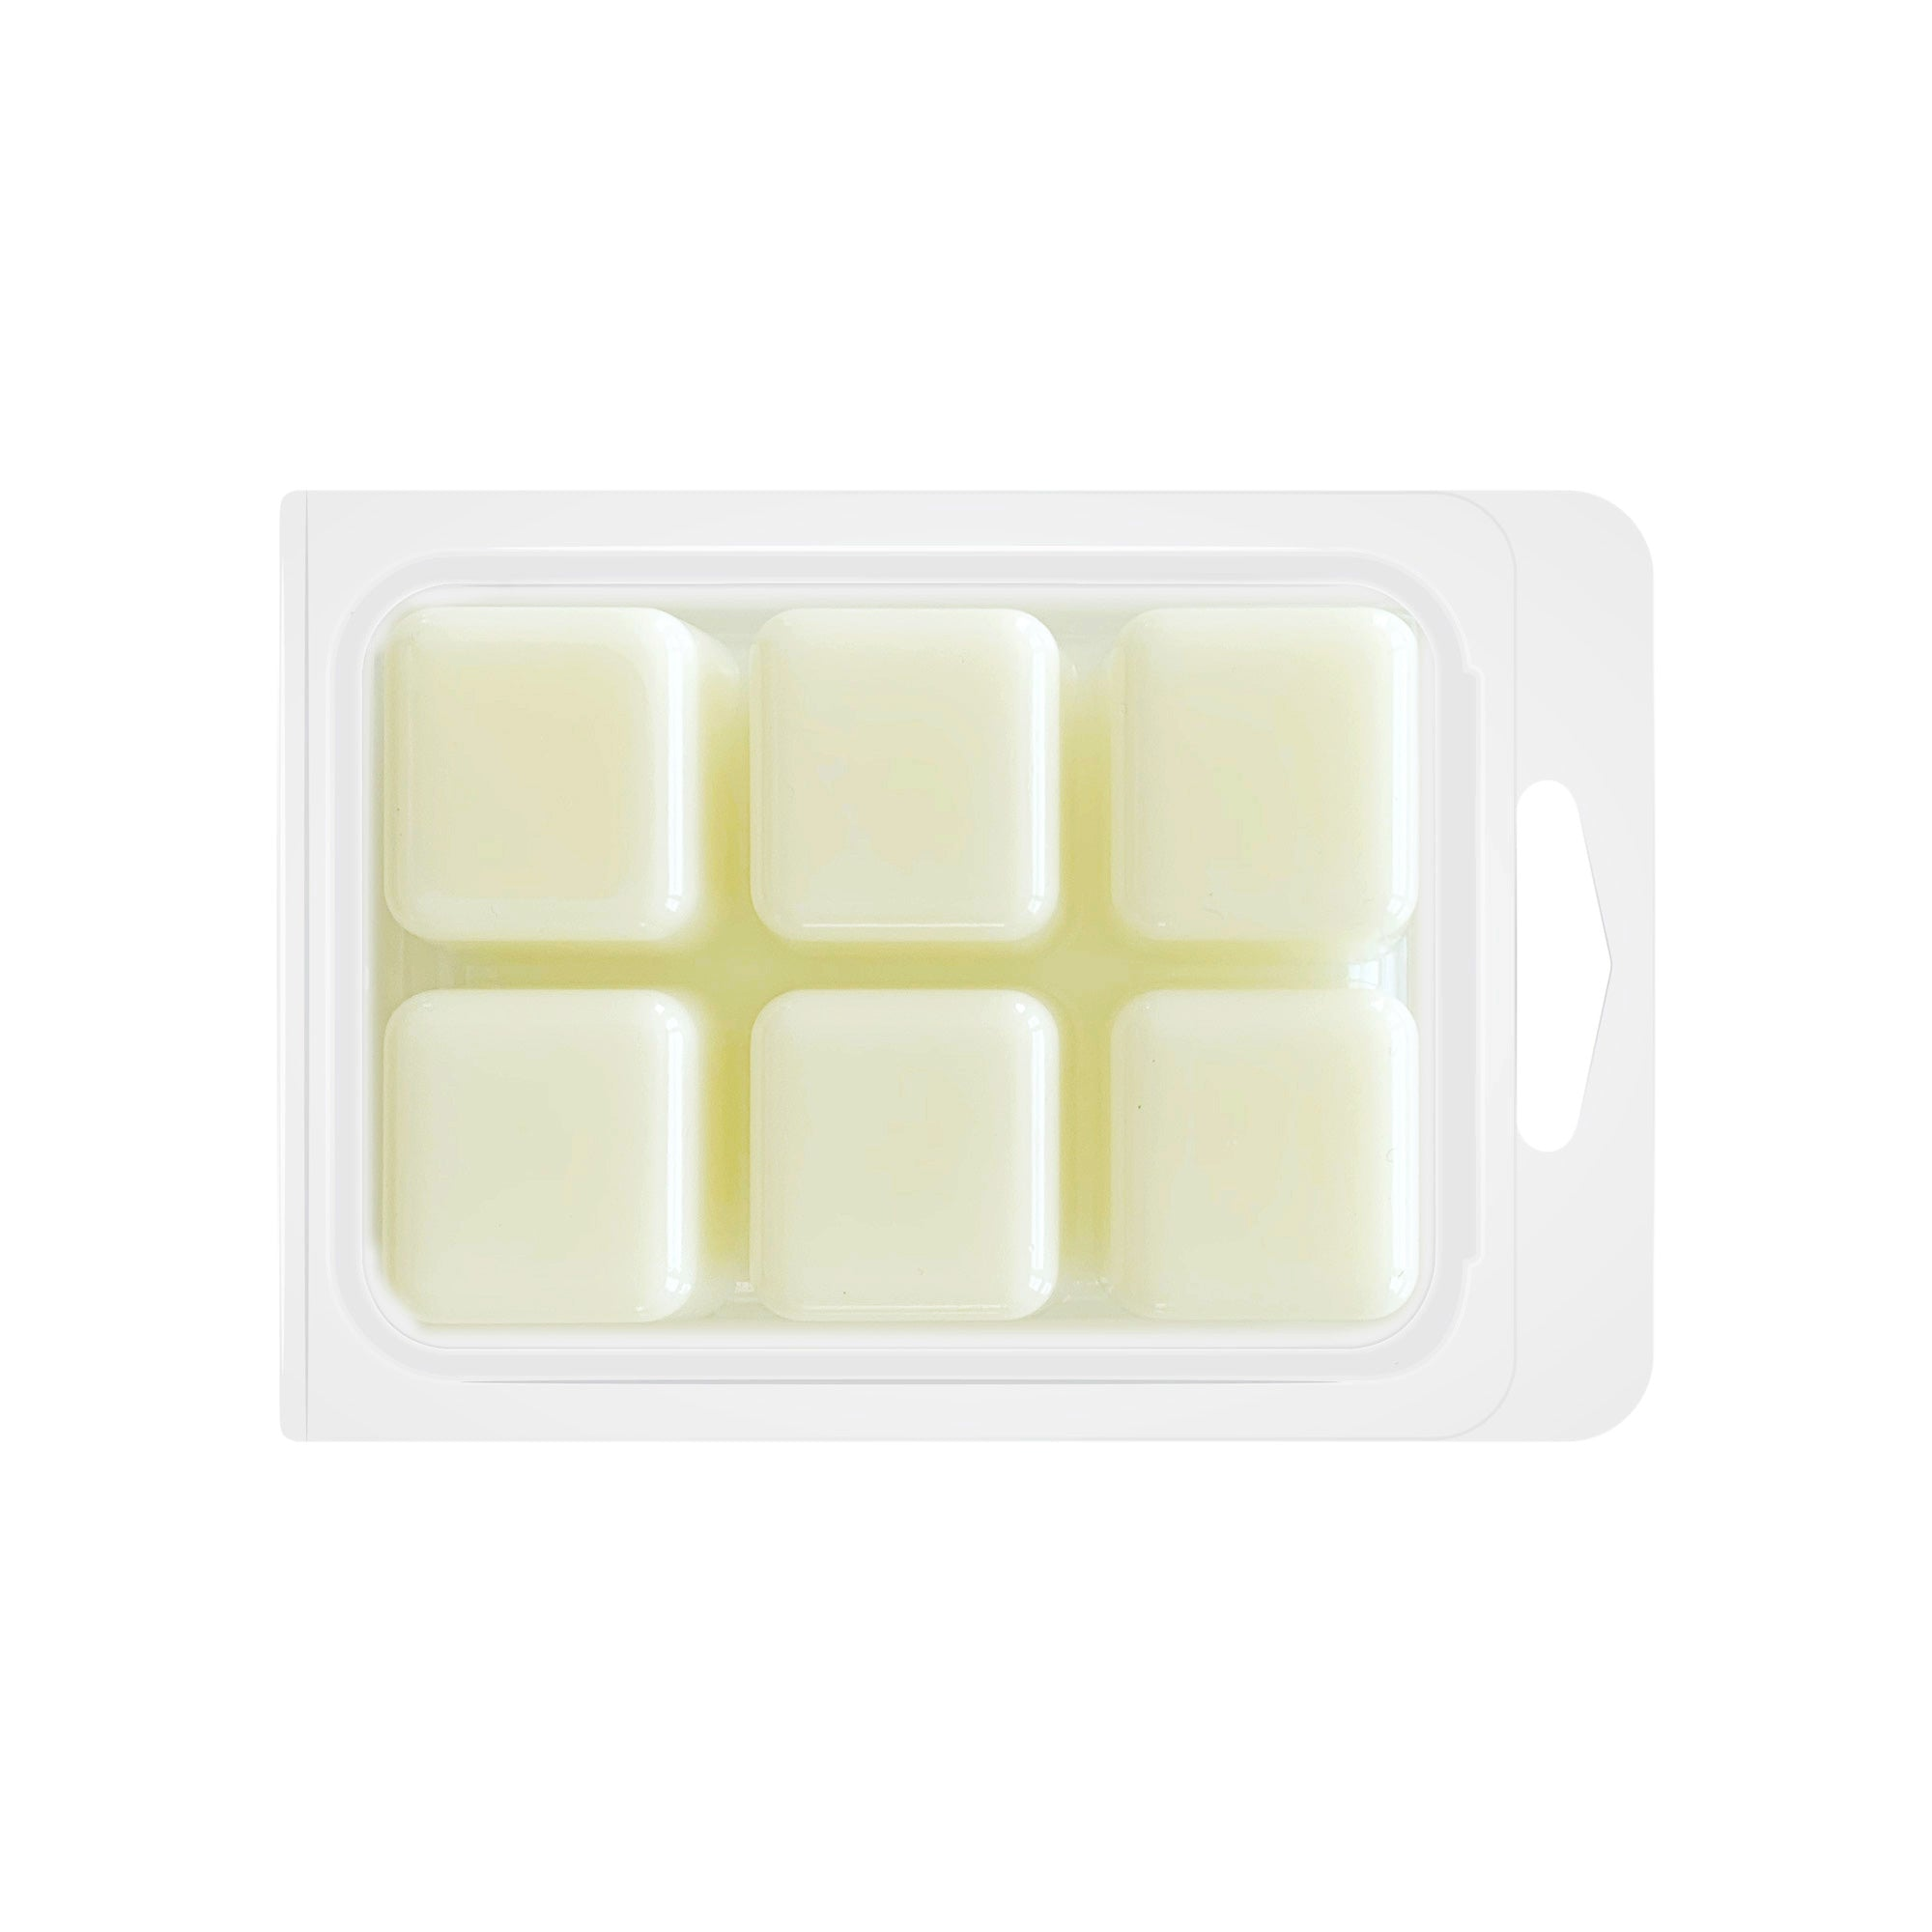 Grandmama's Pound Cake Wax Melts